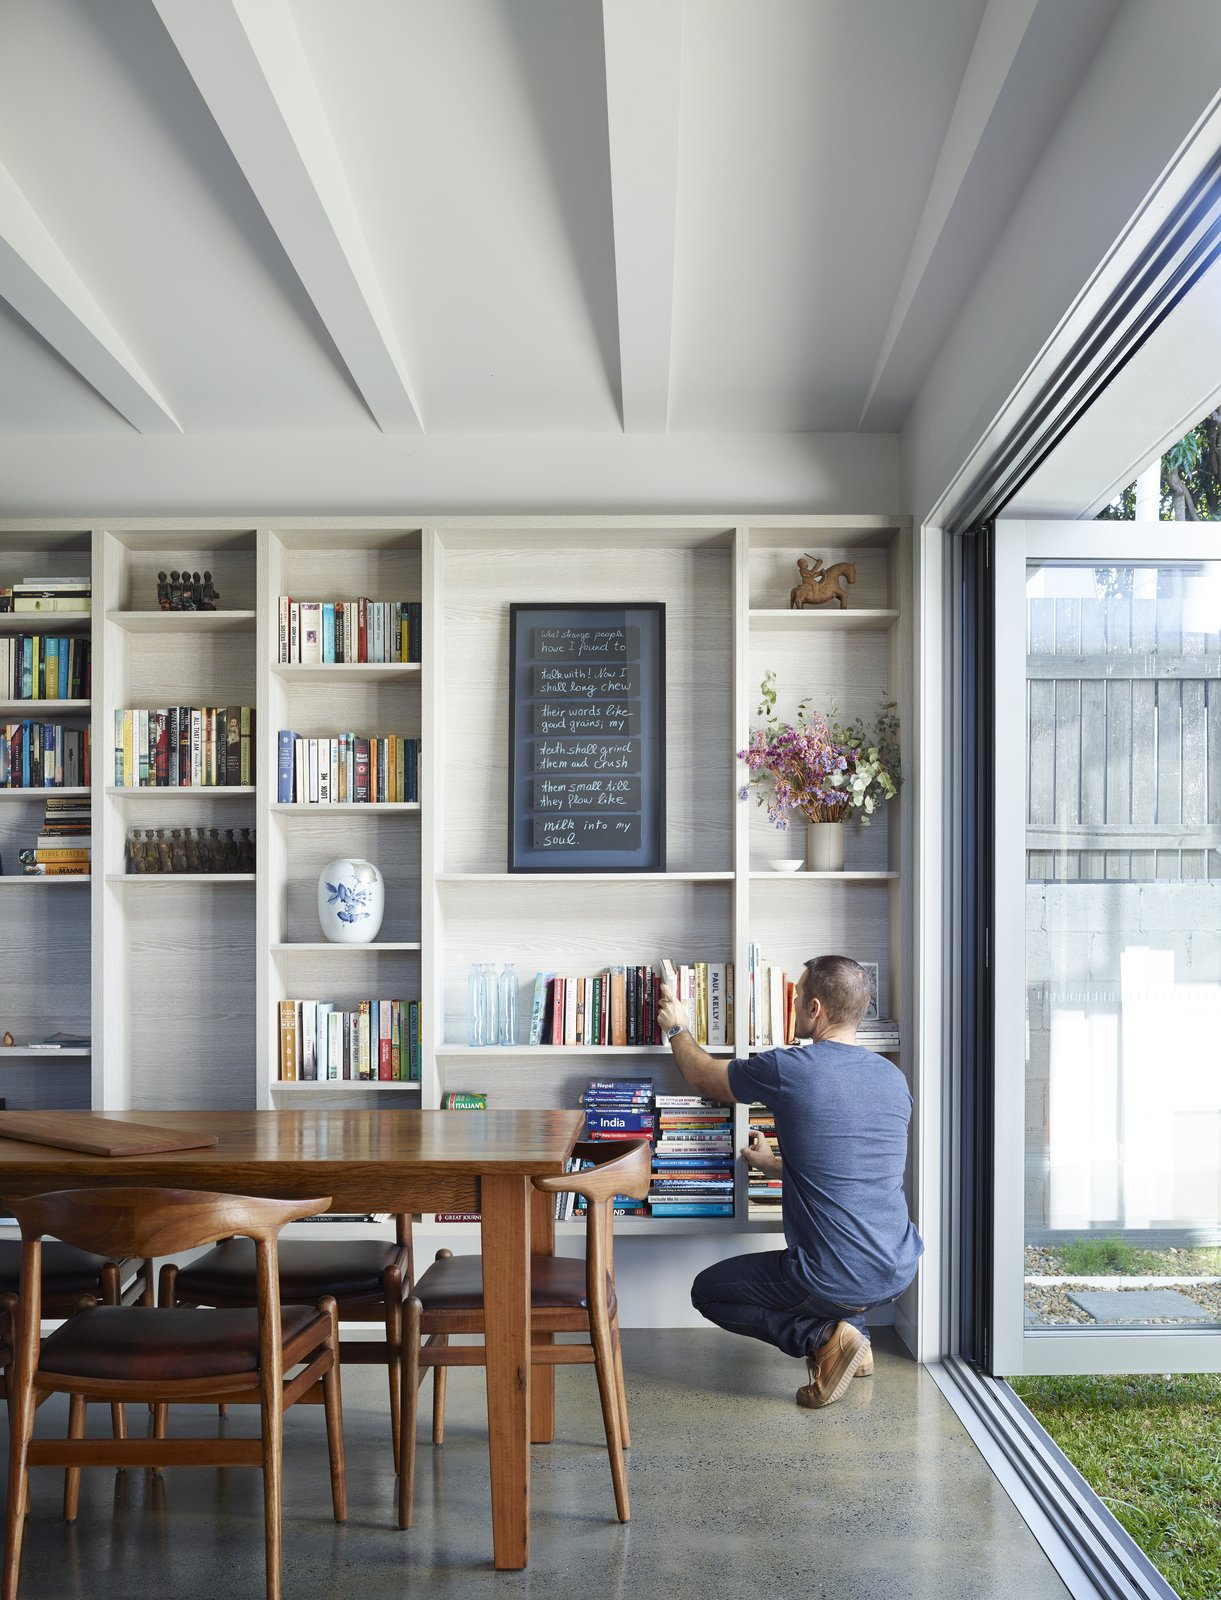 """""""Working with the narrow qualities of the site, the internal spaces of the kitchen and main living areas can open completely to double them in size,"""" O'Neill said. The architecture firm built a custom bookshelf using drifted oak with the warm Ravine finish by Polytec.  Annie Street by Kelly Dawson"""